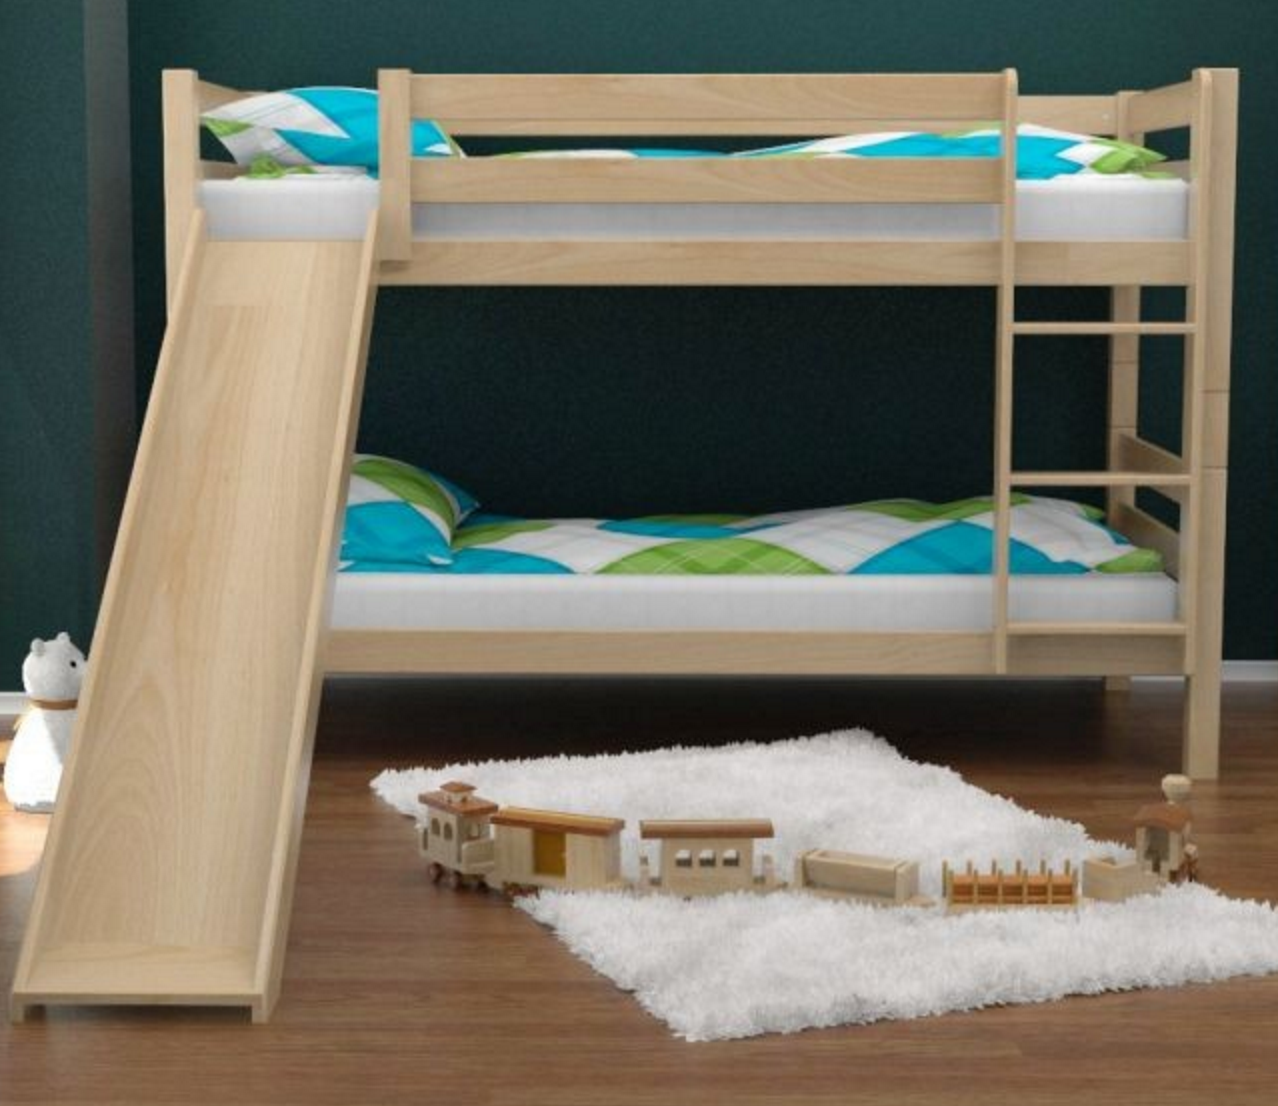 Wooden loft bed with slide  Aiden Natural Bunk Bed with Slide  Pinterest  Bunk bed and Products